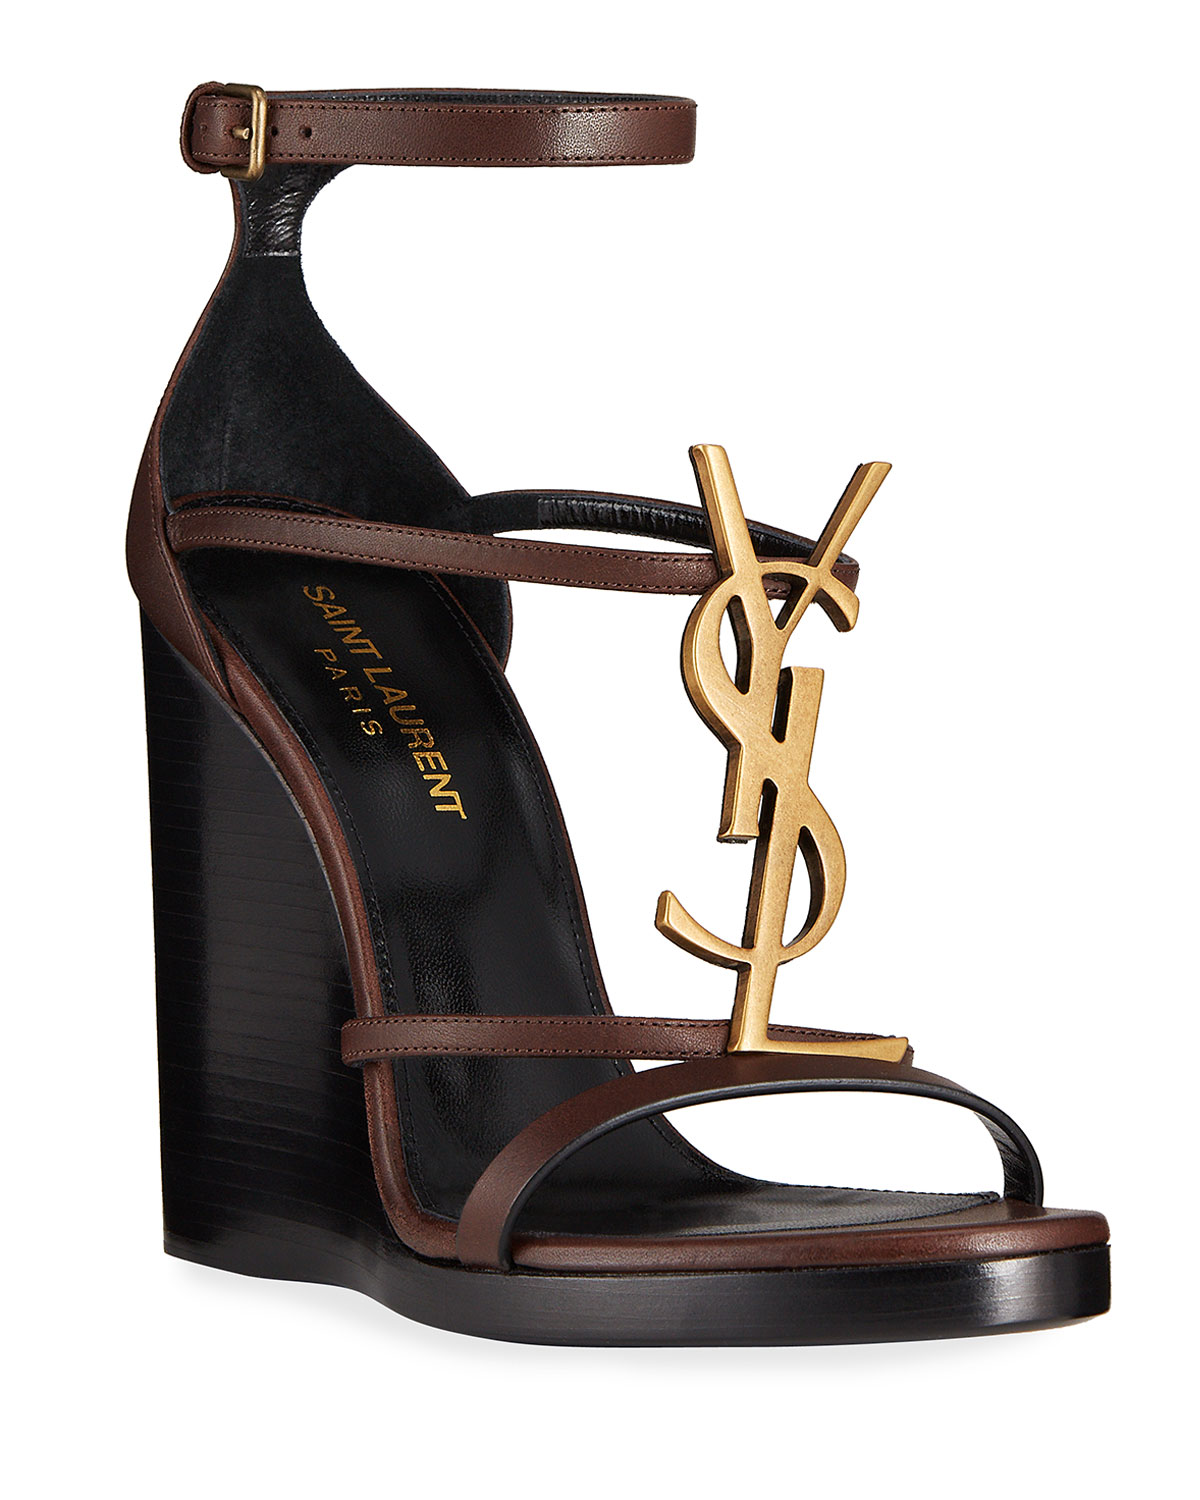 Saint Laurent Leathers CASSANDRA LEATHER YSL WEDGE SANDALS